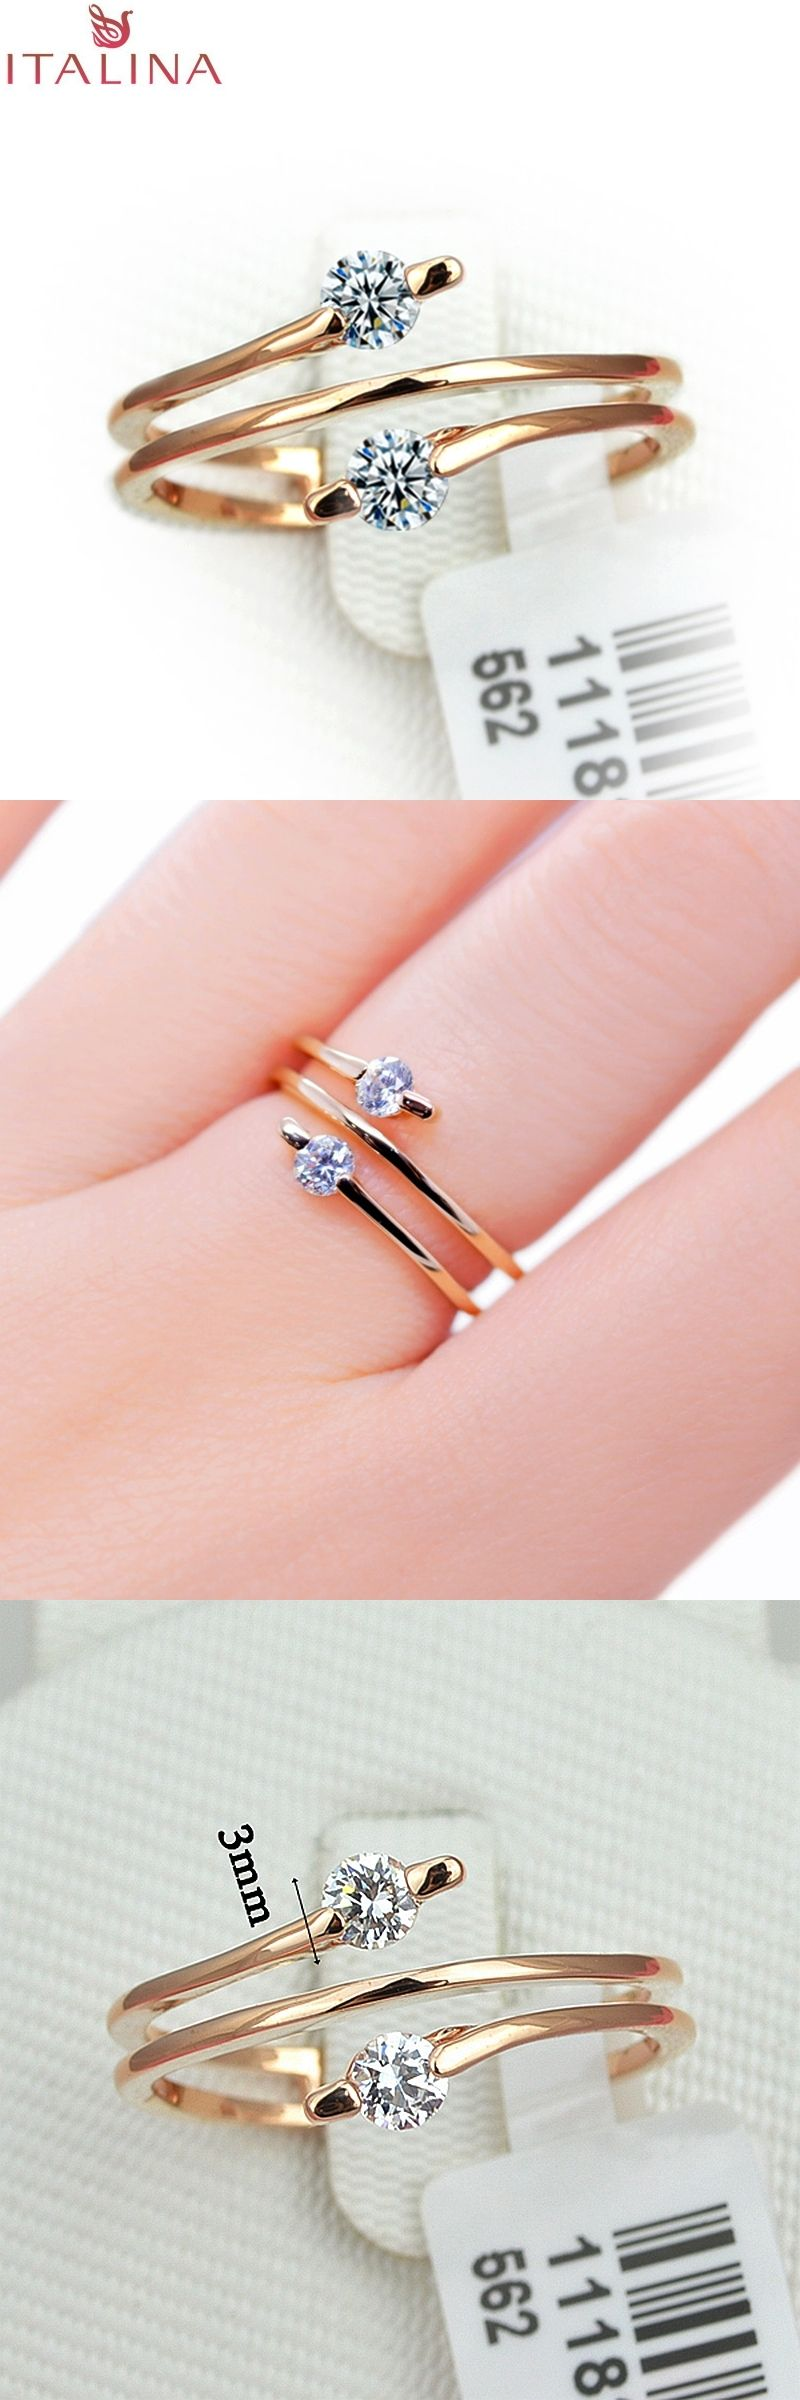 Hot Sale ITALINA Brand Rose Gold Plated Jewelry Lady 2 Stone ...